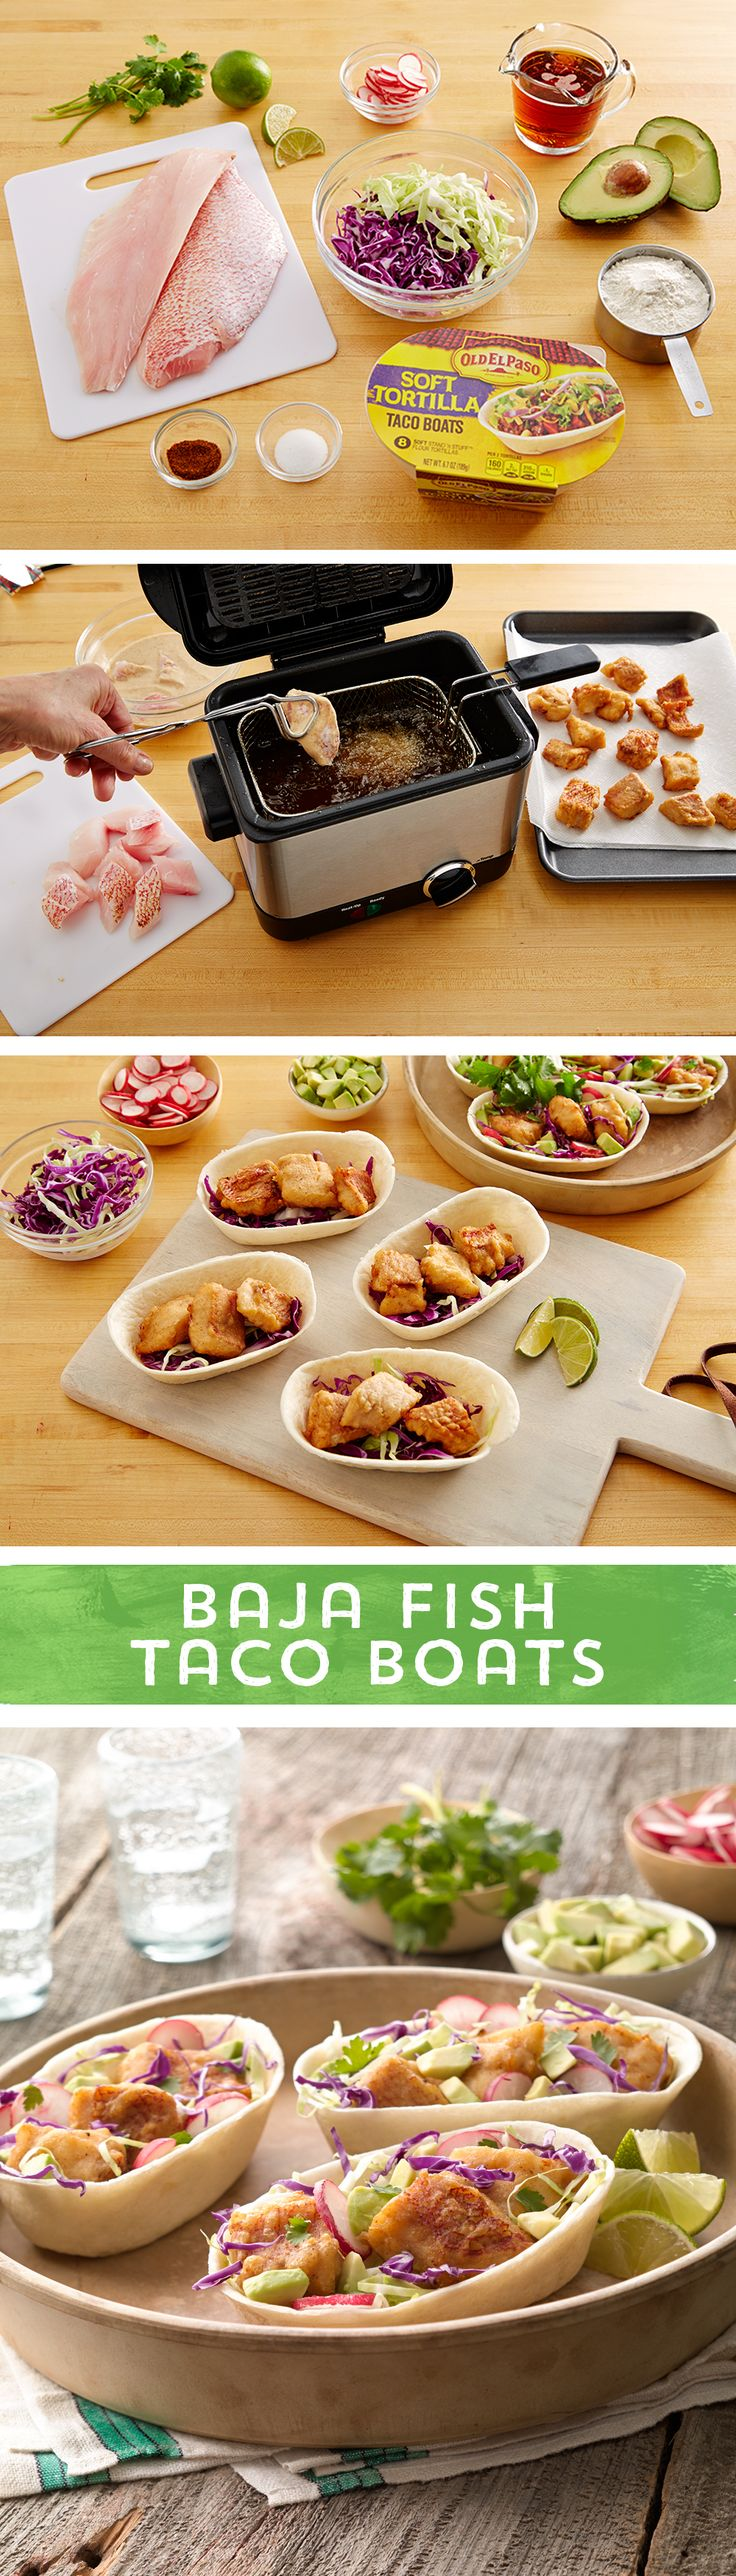 17 best images about old el paso taco boats recipes on for El paso fishing